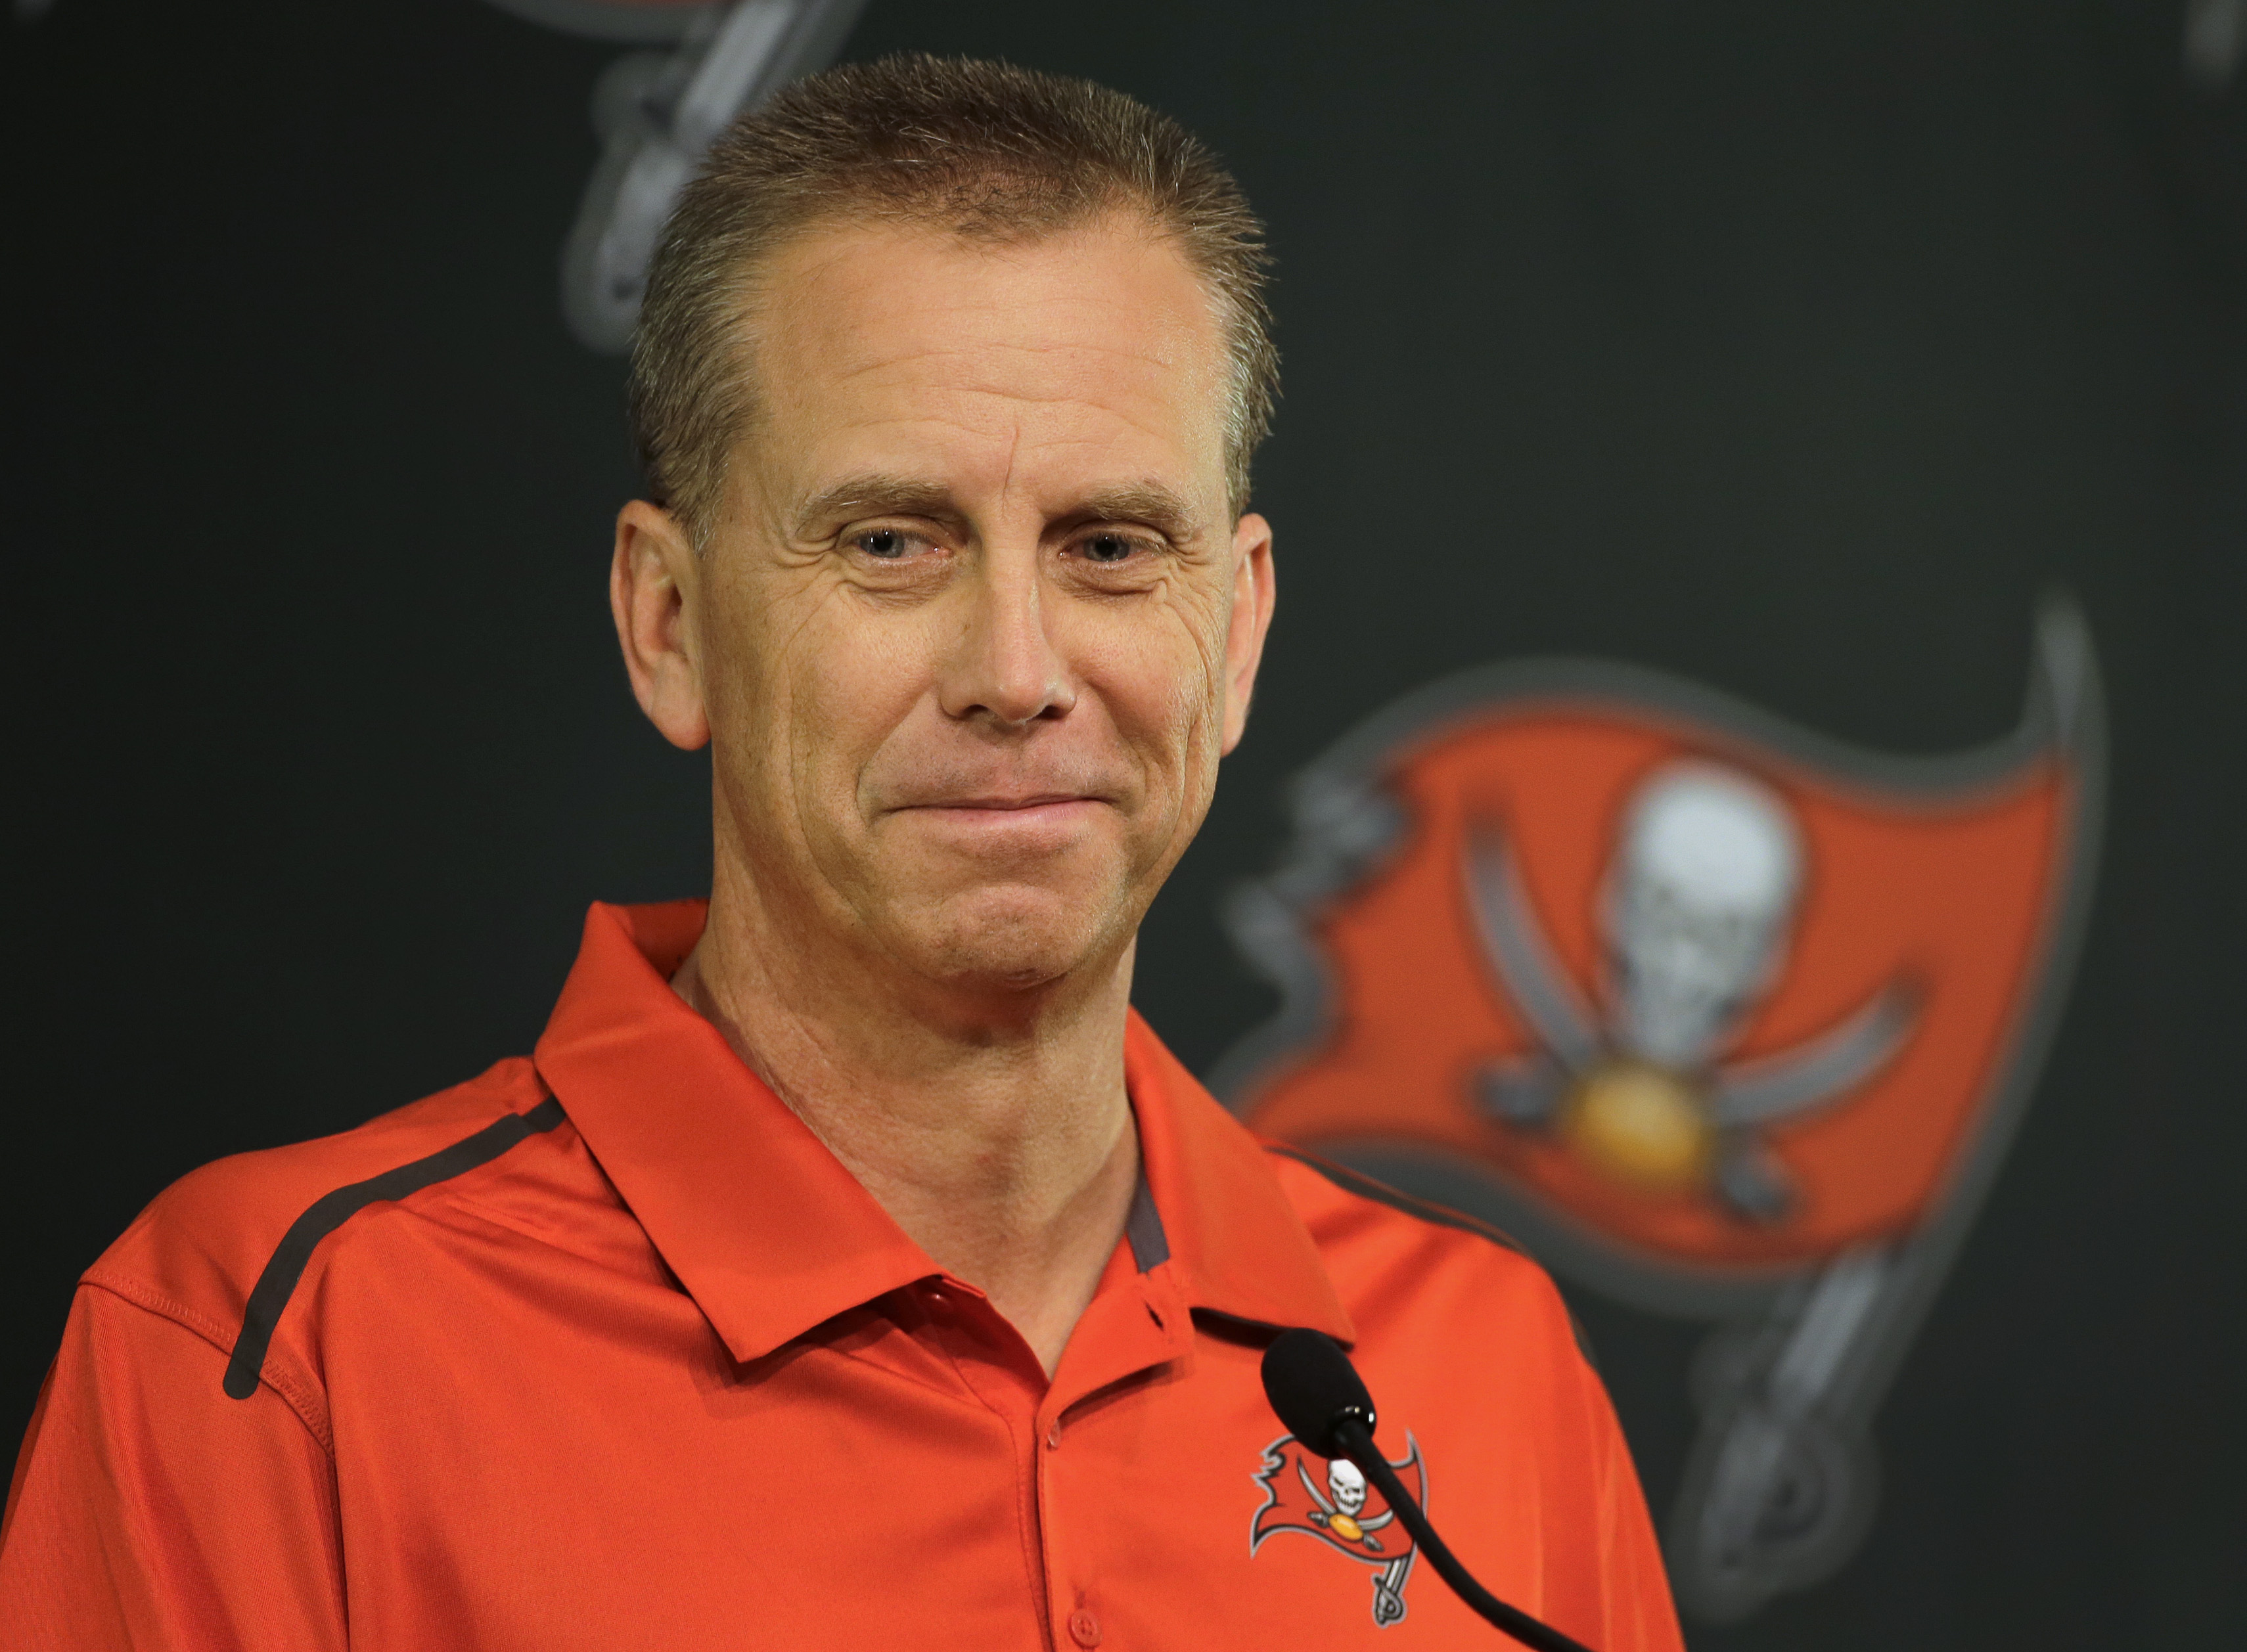 New Tampa Bay Buccaneers offensive coordinator Todd Monken smiles as he listens to a question during a news conference at the team's training facility Thursday, Jan. 28, 2016, in Tampa, Fla. Monken will also be the wide receivers coach. He was formerly th